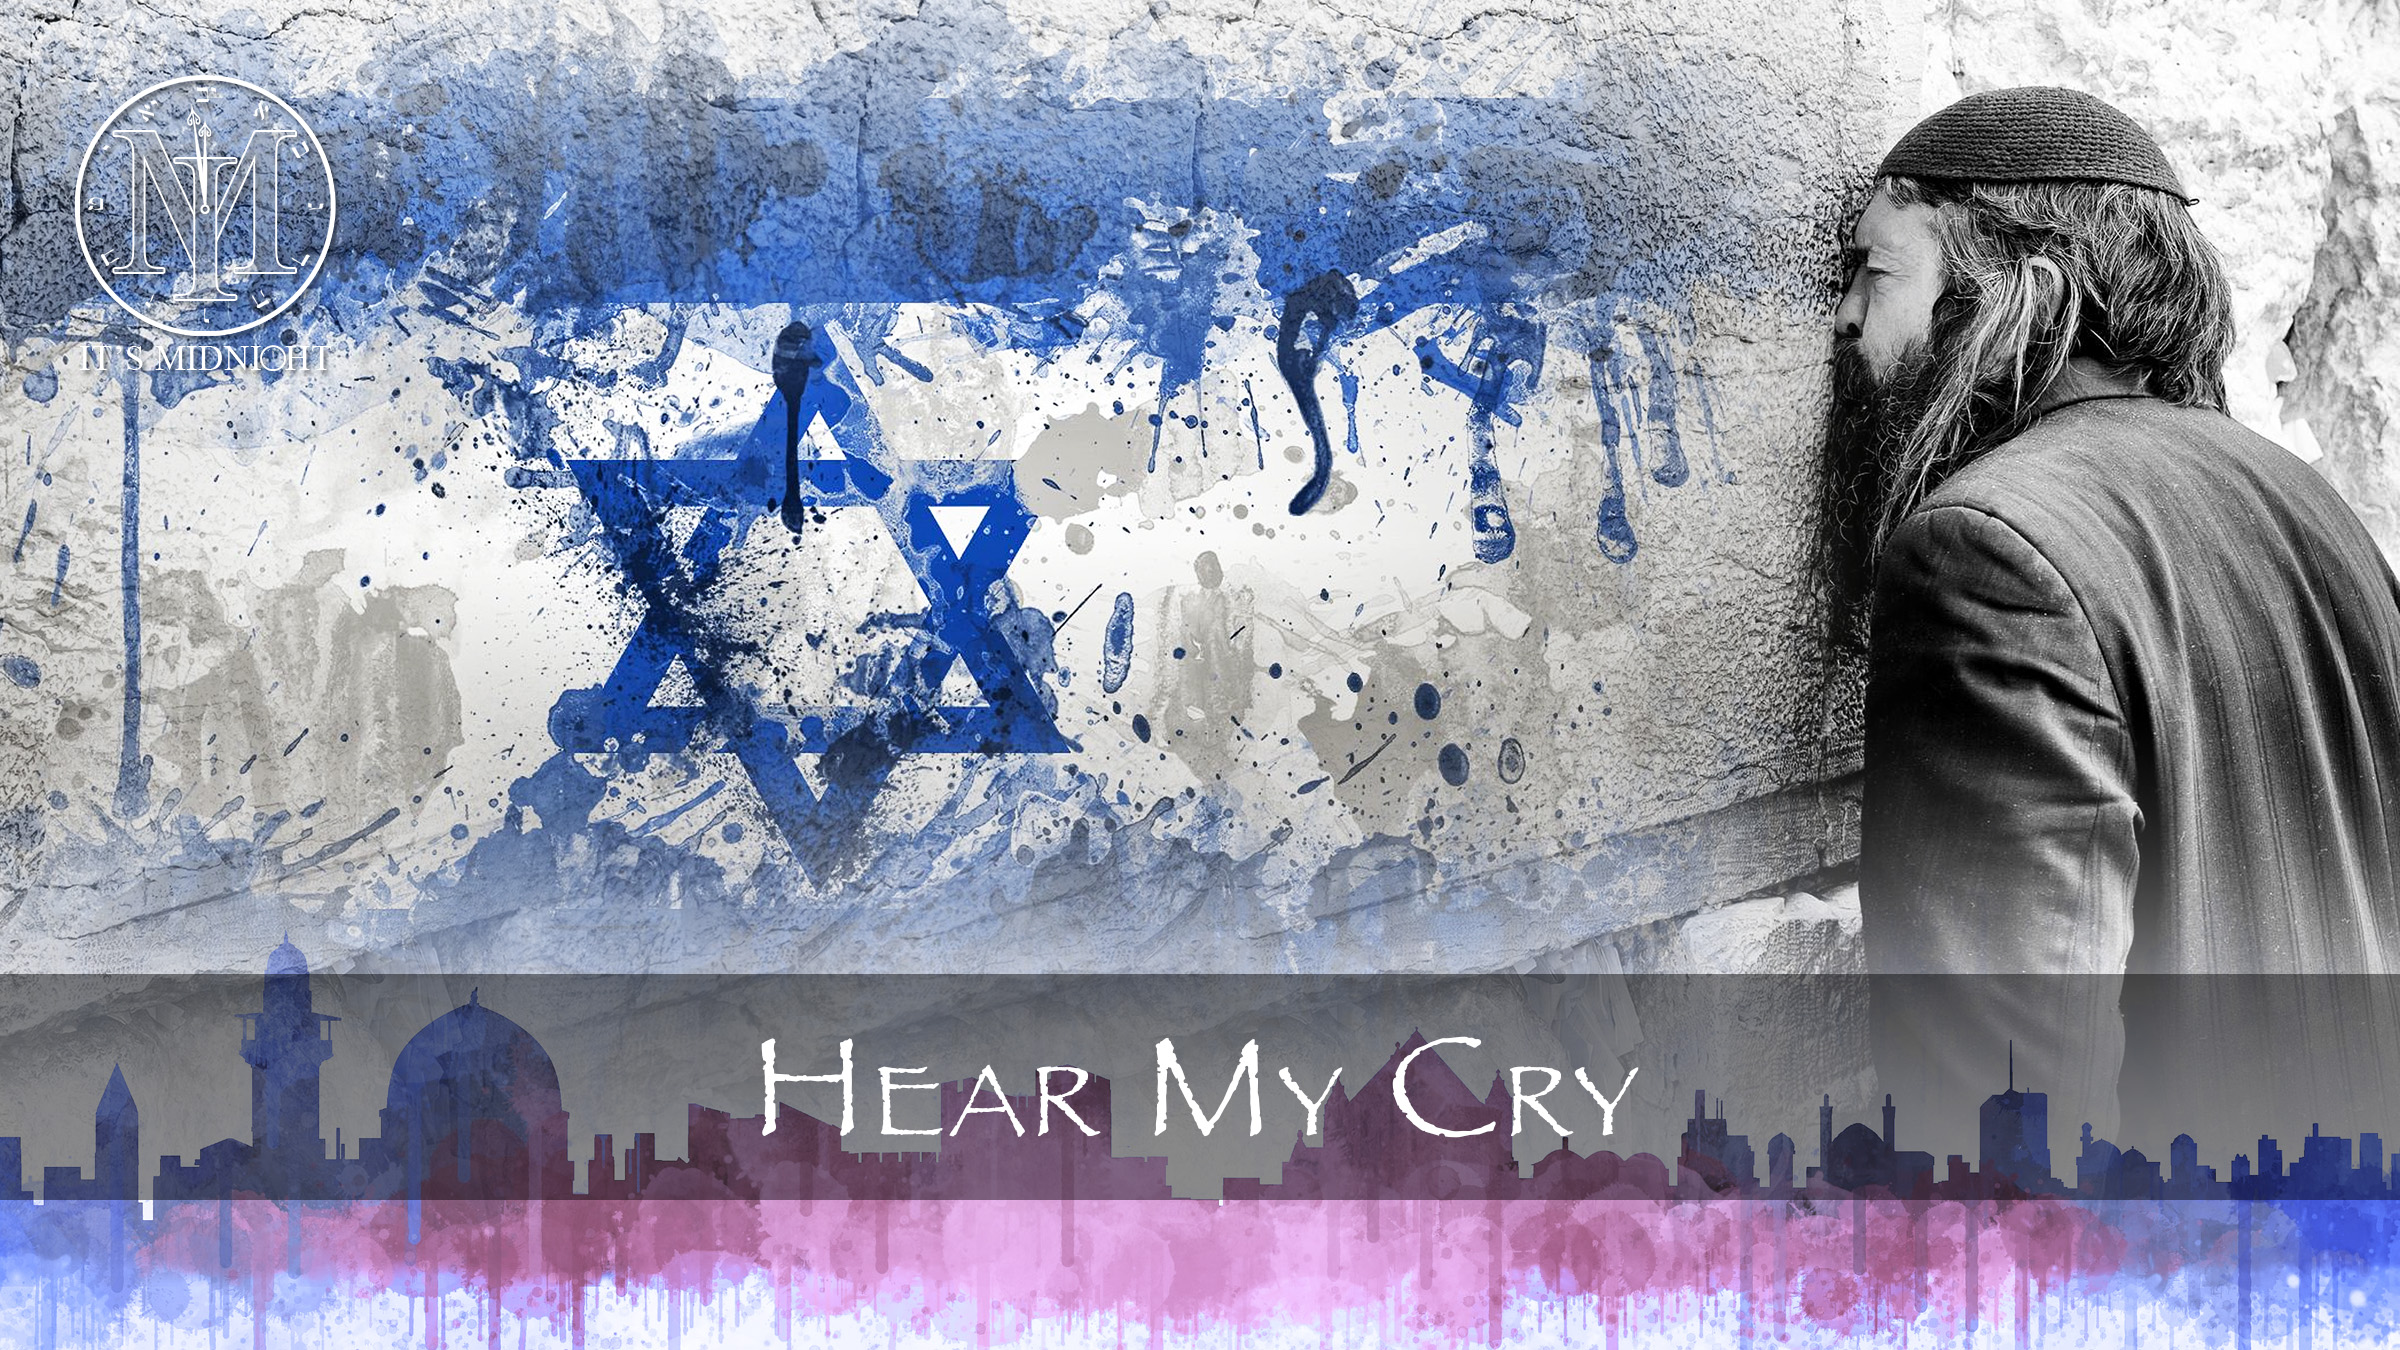 Hear My Cry Thumbnail (16x9) for YouTube.jpg